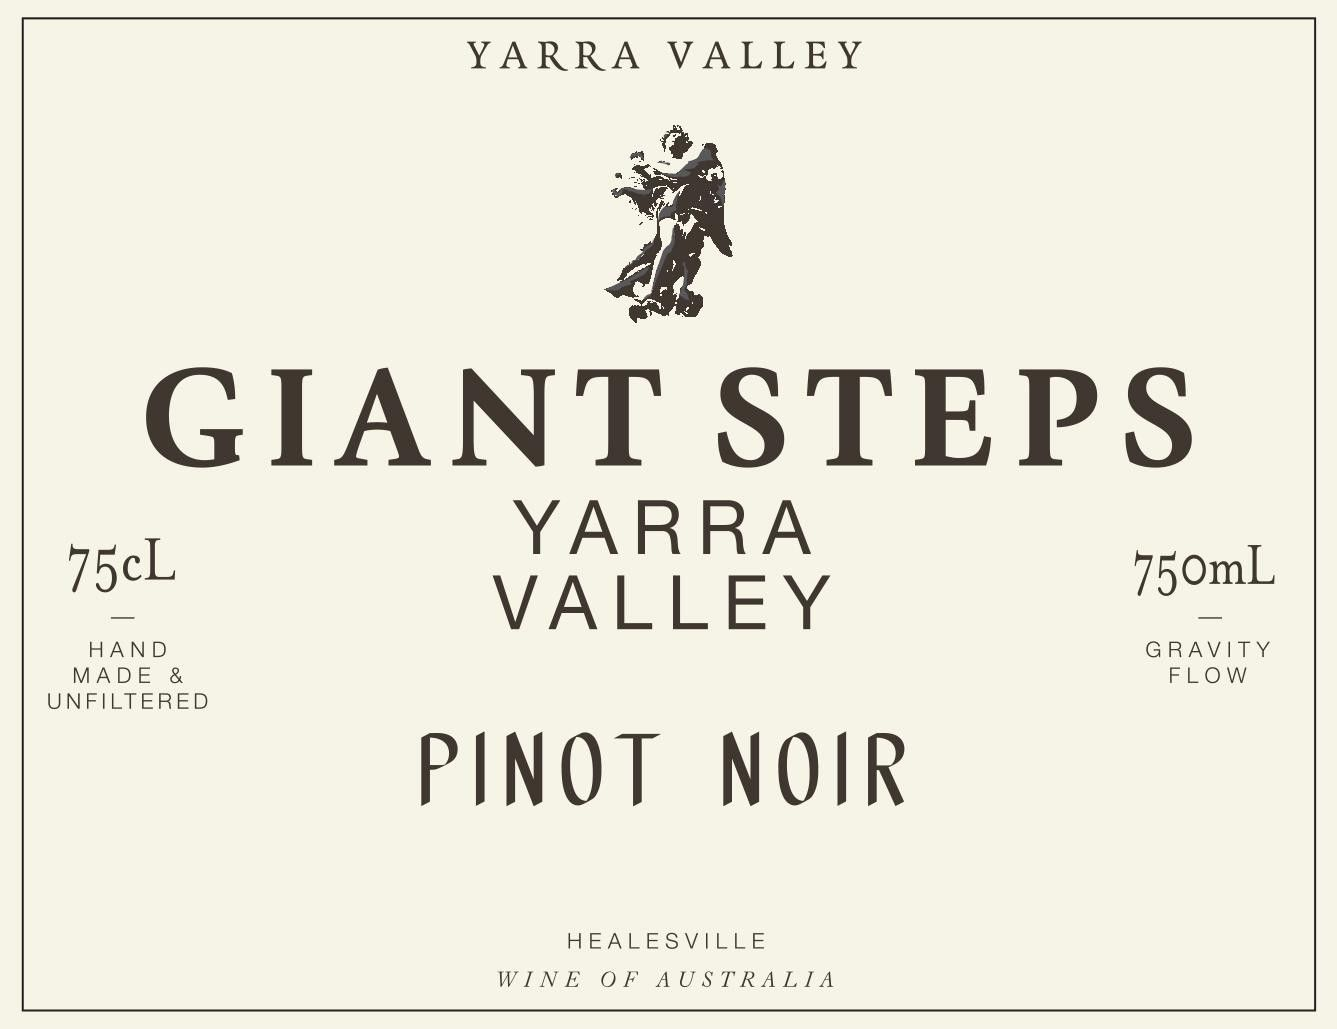 Giant Steps Yarra Valley Pinot Noir 2017 Front Label